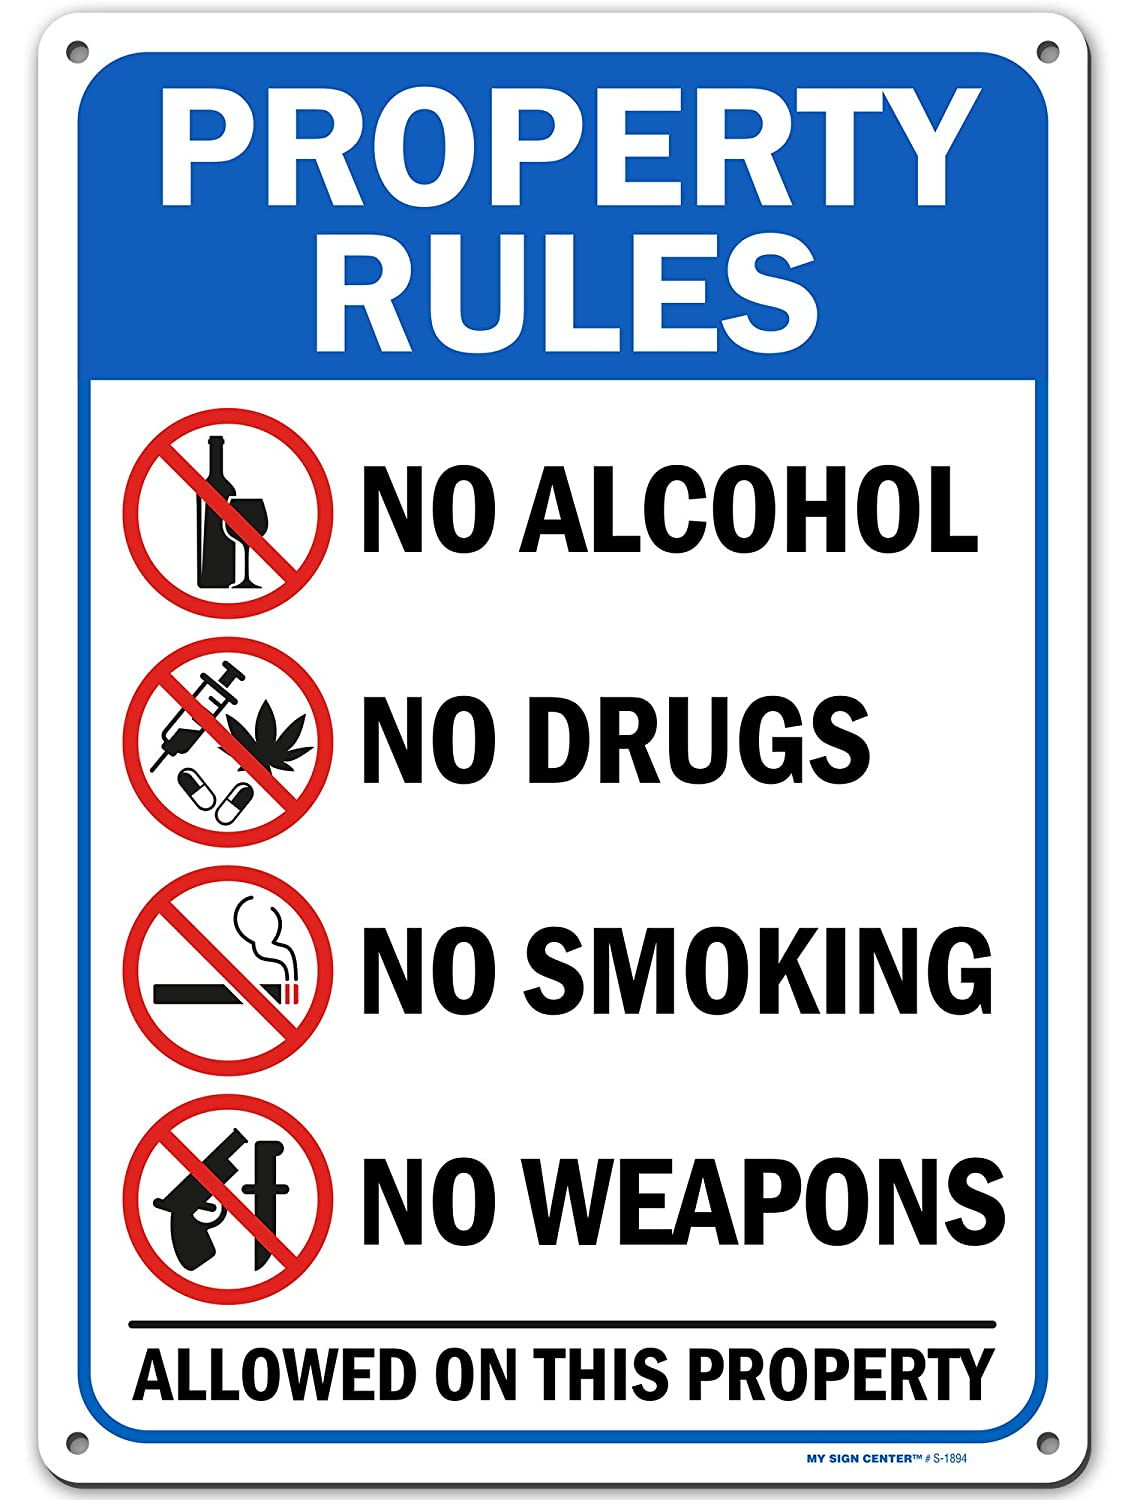 Property Rules Sign No Alcohol, No Drugs, No Weapons, No Smoking, Made Out of .040 Rust-Free Aluminum, Indoor/Outdoor Use, UV Protected and Fade-Resistant, 10